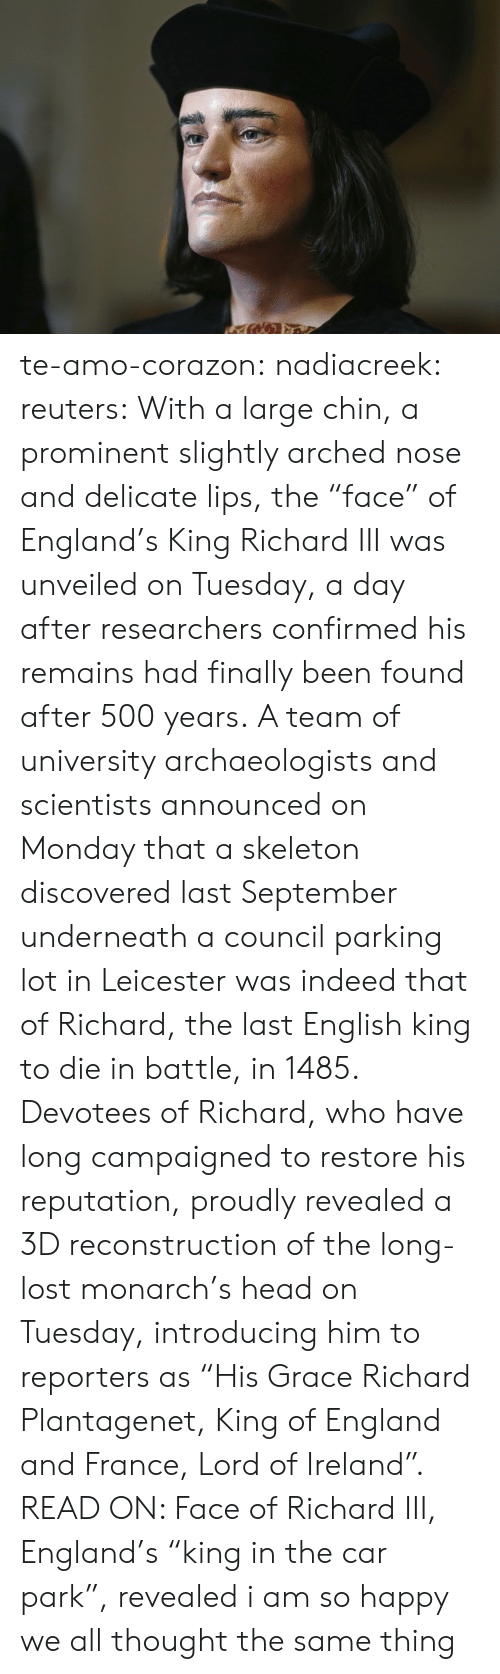 "Leicester: te-amo-corazon: nadiacreek:  reuters:  With a large chin, a prominent slightly arched nose and delicate lips, the ""face"" of England's King Richard III was unveiled on Tuesday, a day after researchers confirmed his remains had finally been found after 500 years. A team of university archaeologists and scientists announced on Monday that a skeleton discovered last September underneath a council parking lot in Leicester was indeed that of Richard, the last English king to die in battle, in 1485. Devotees of Richard, who have long campaigned to restore his reputation, proudly revealed a 3D reconstruction of the long-lost monarch's head on Tuesday, introducing him to reporters as ""His Grace Richard Plantagenet, King of England and France, Lord of Ireland"". READ ON: Face of Richard III, England's ""king in the car park"", revealed     i am so happy we all thought the same thing"